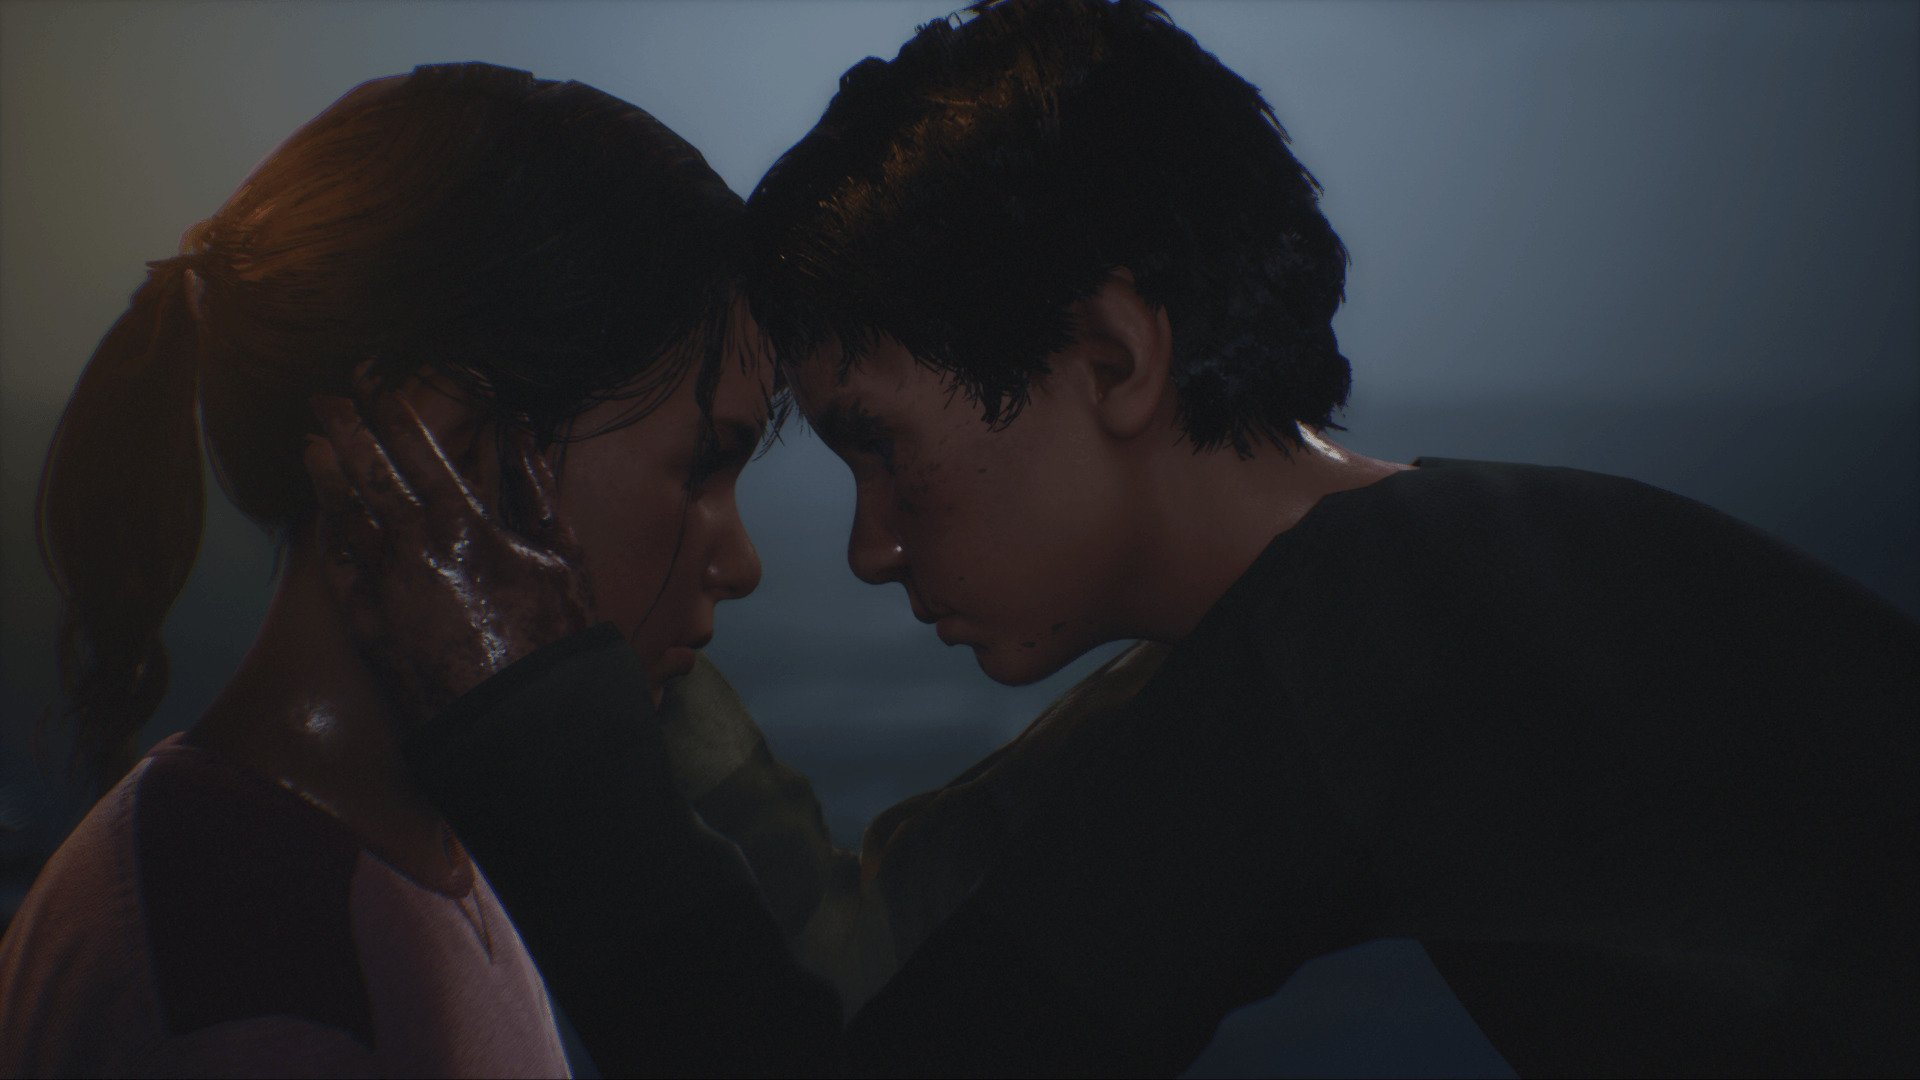 Dontnod teams up with Microsoft for new game featuring a transgender protagonist